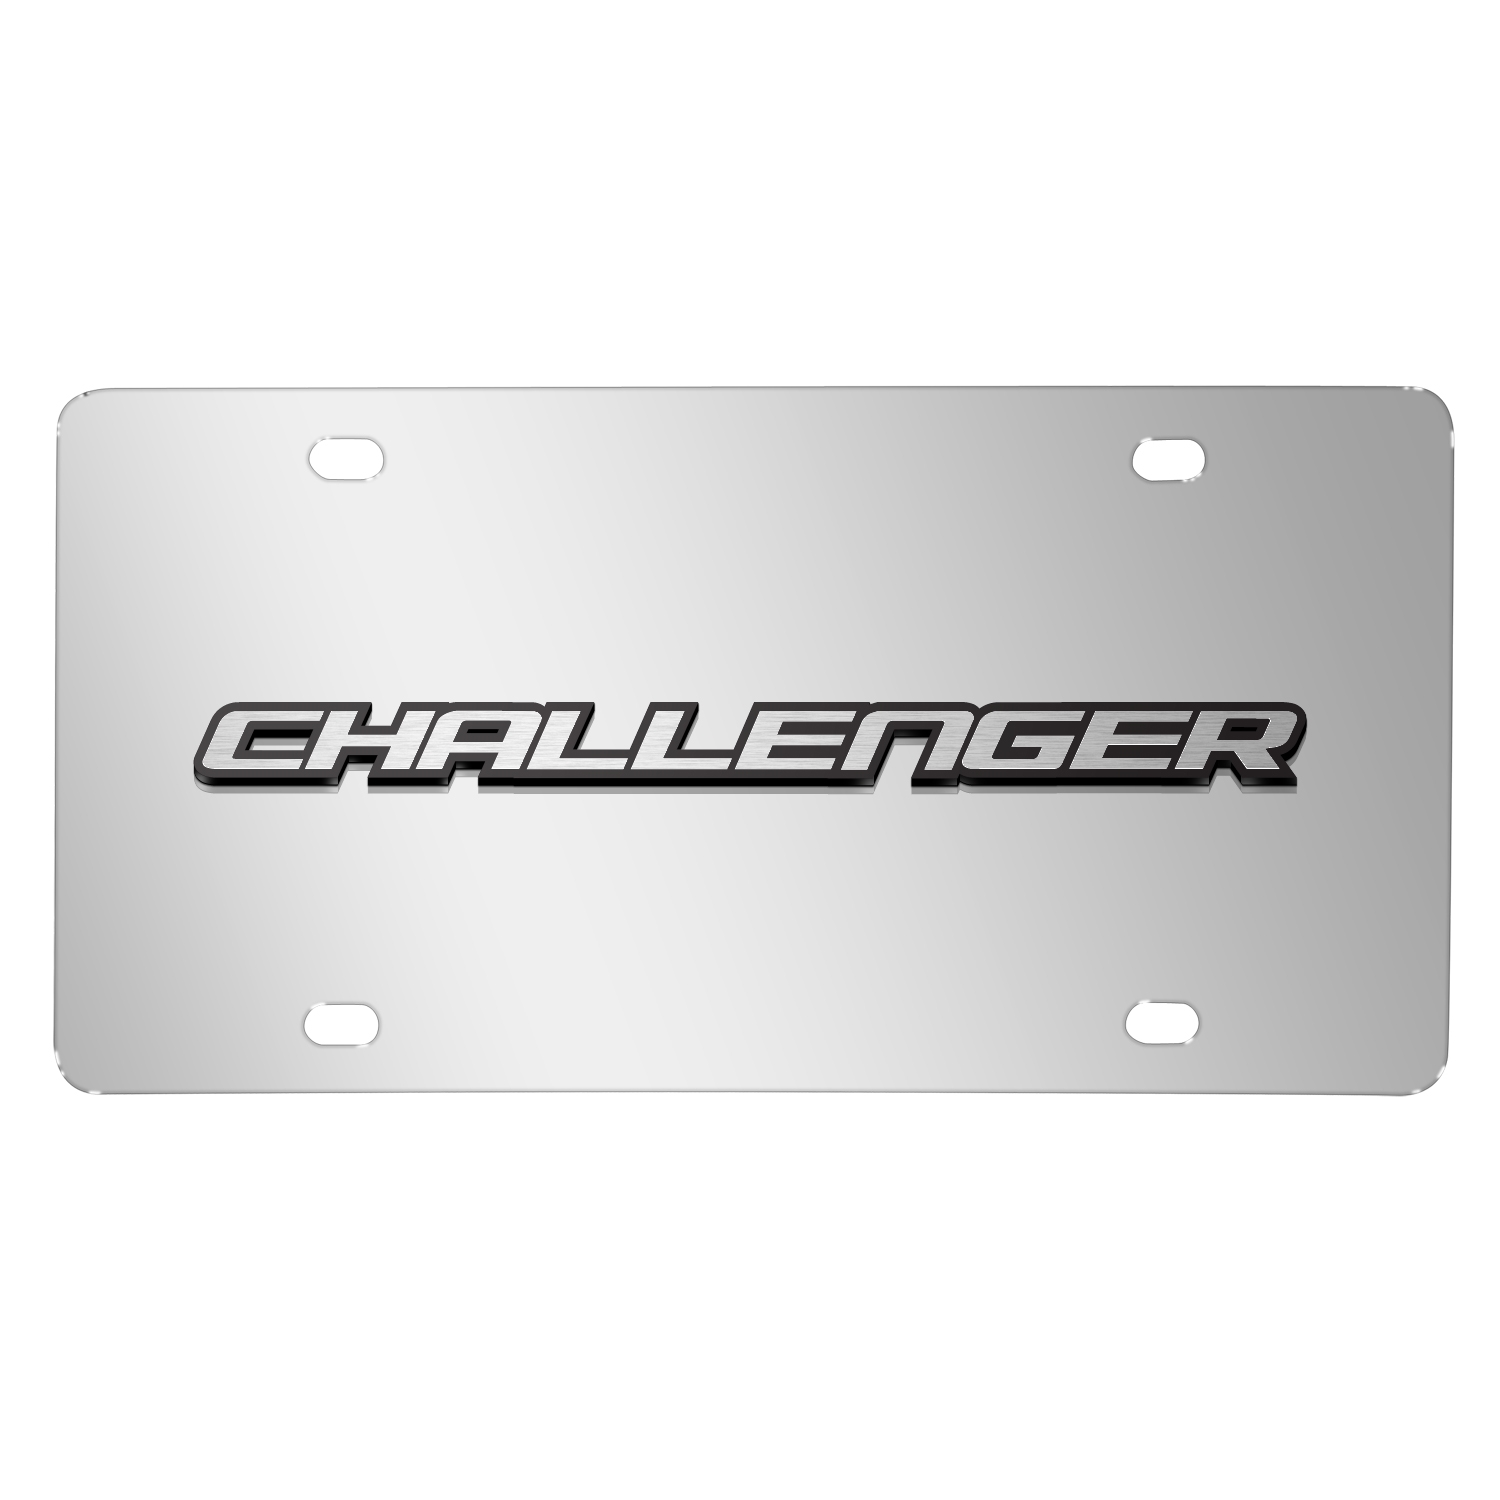 Dodge Challenger 3D Logo on Chrome Stainless Steel License Plate